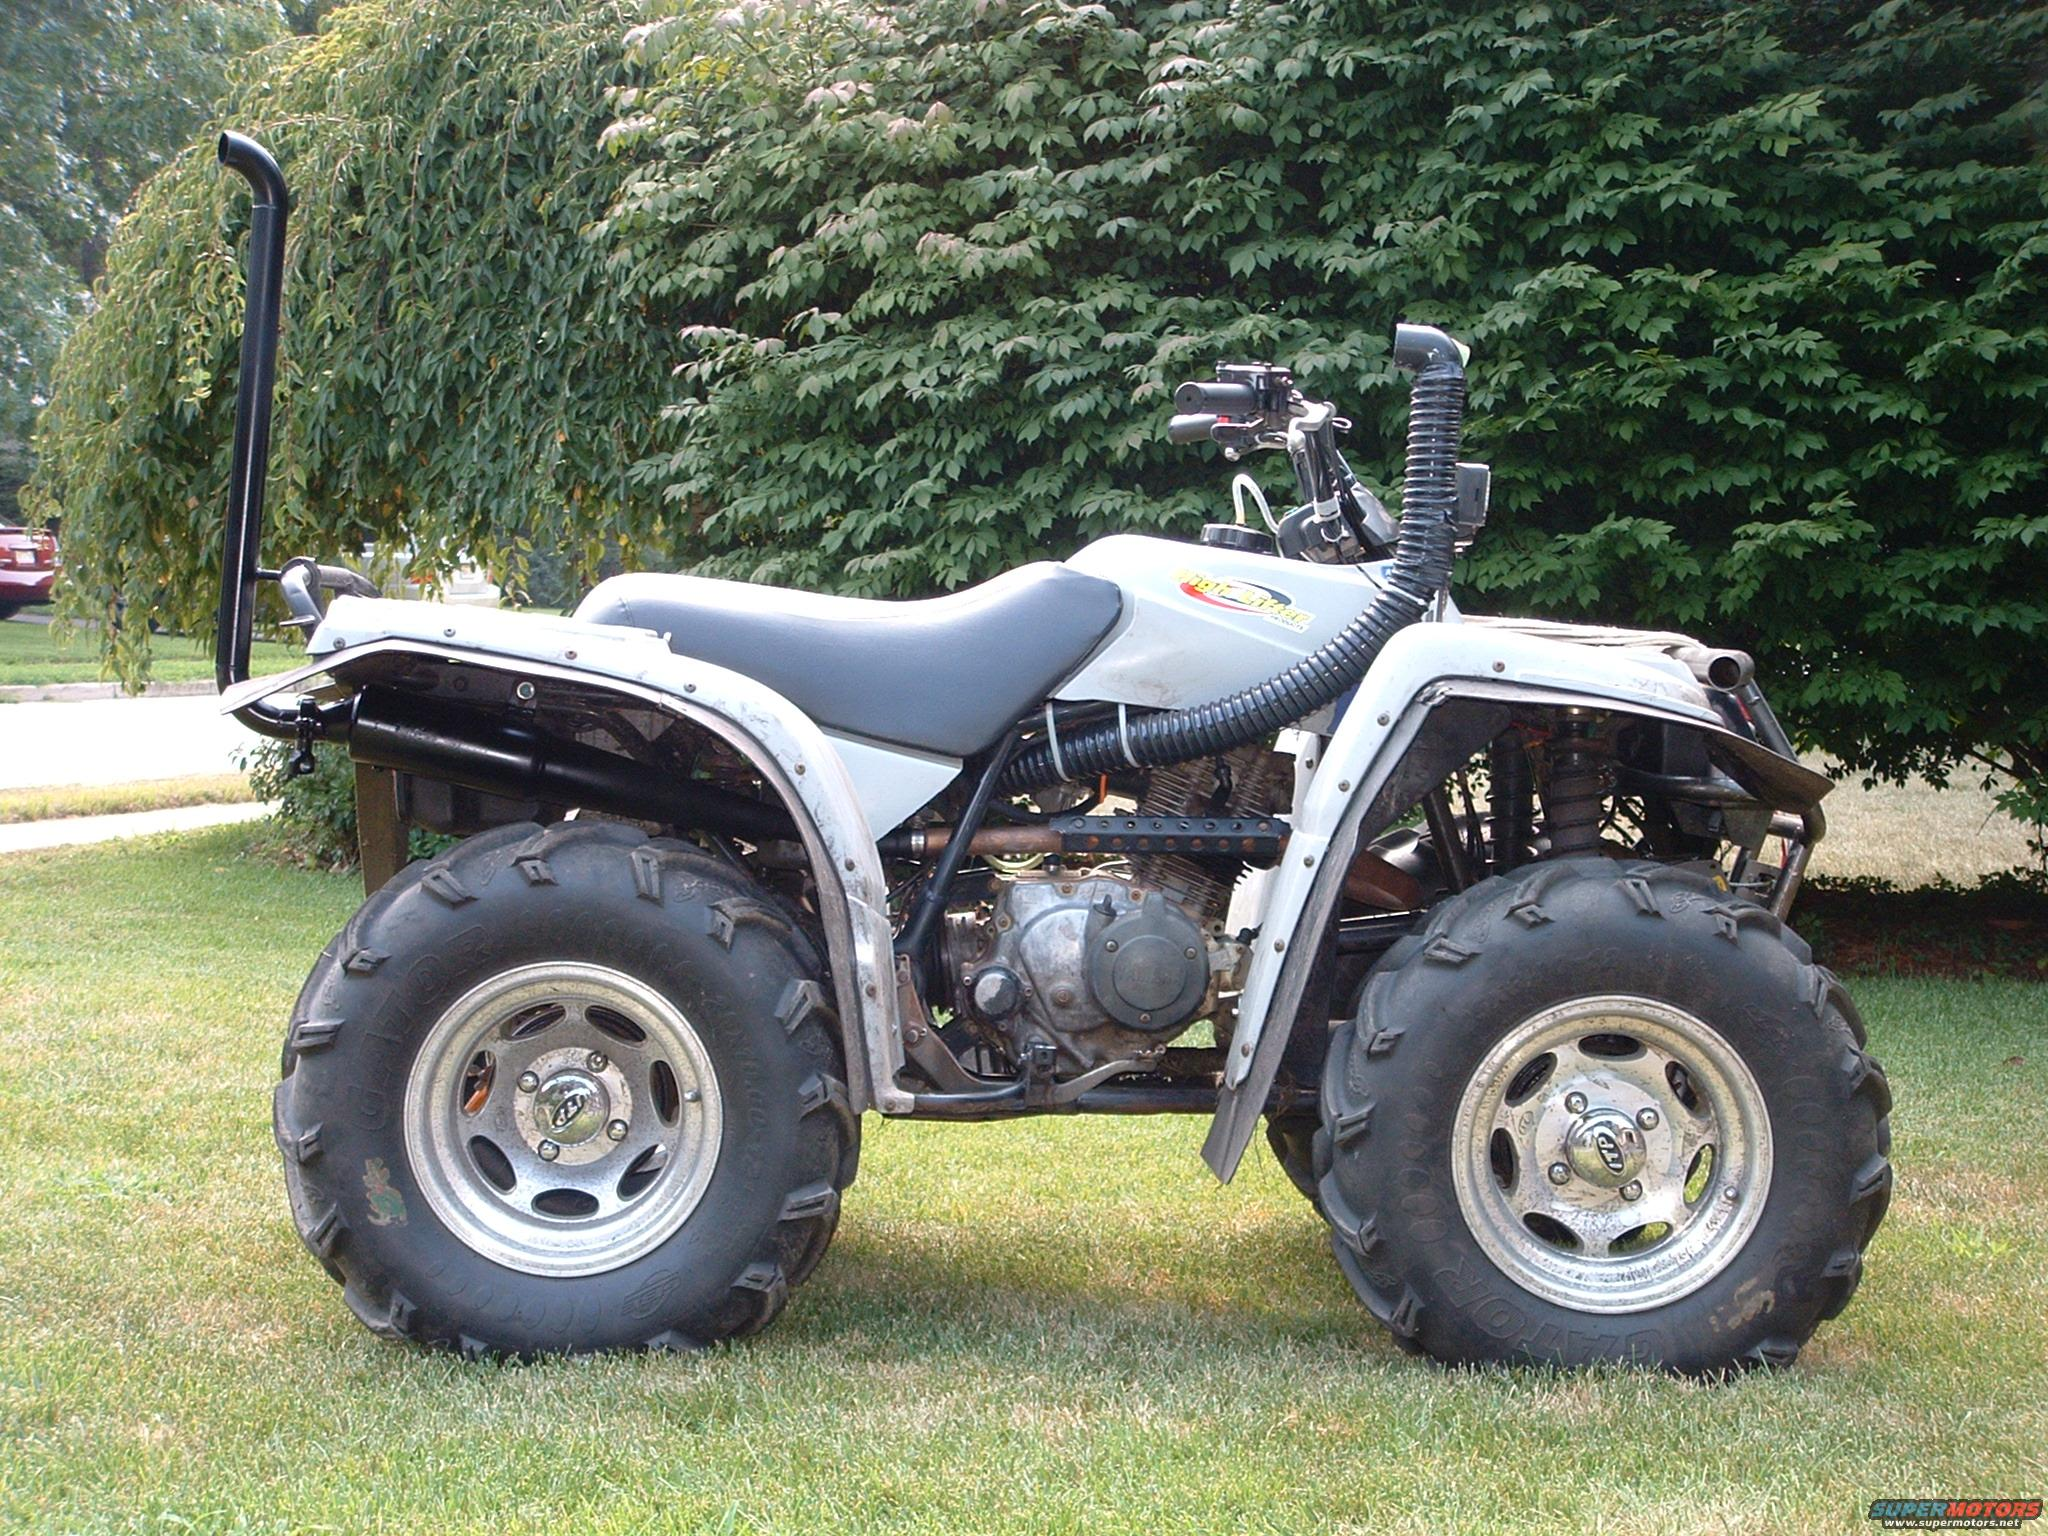 Yamaha timberwolf photo - 5